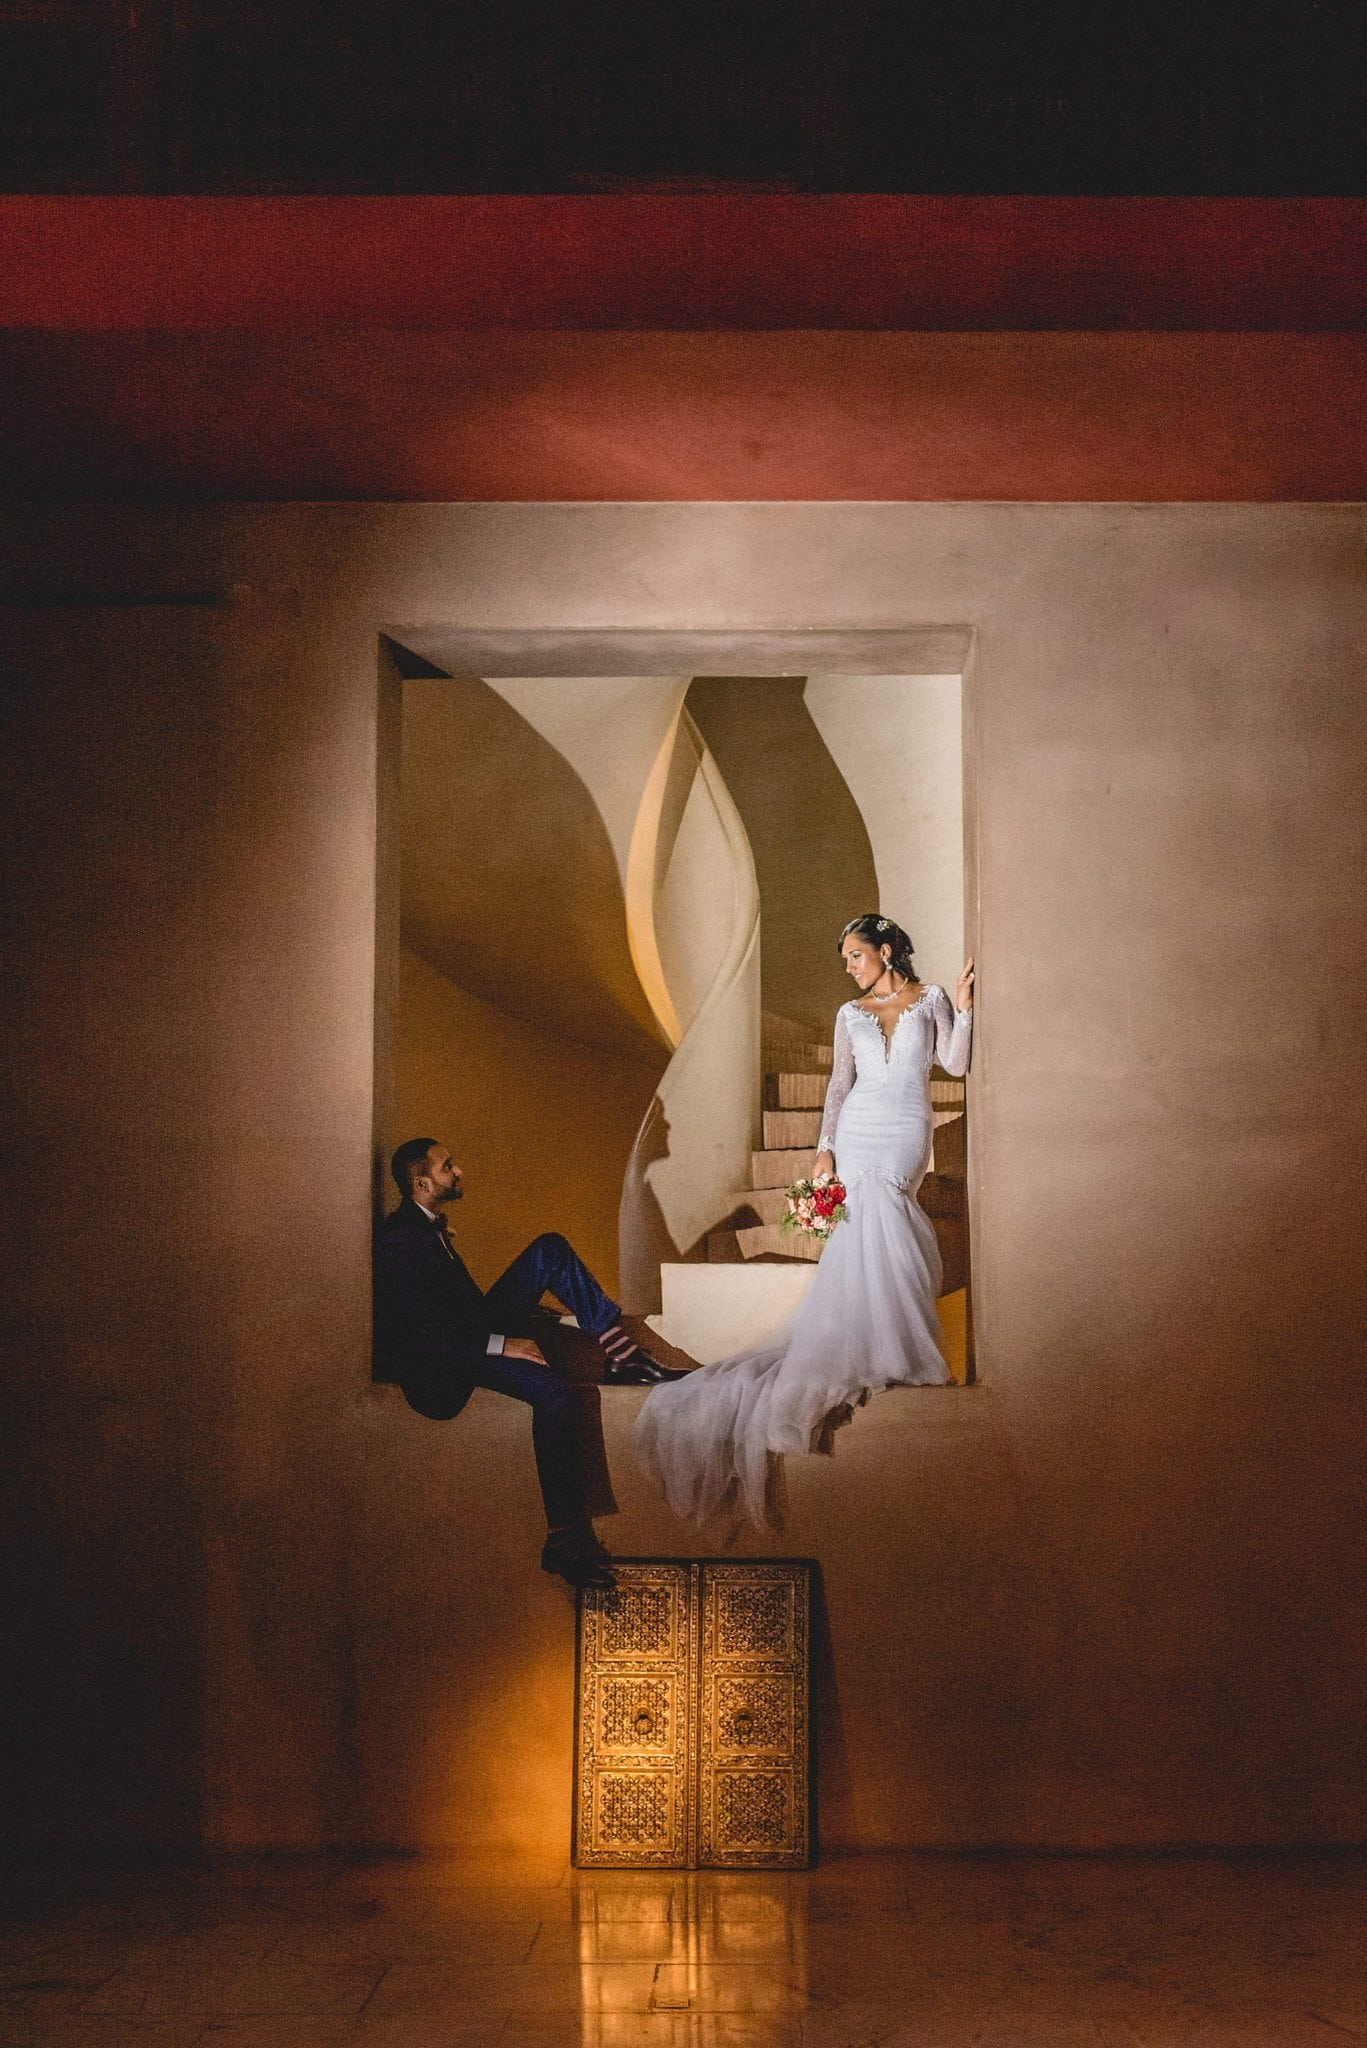 Dramatic shot of a Bride and groom at the base of the Ksar Char Bagh staircase